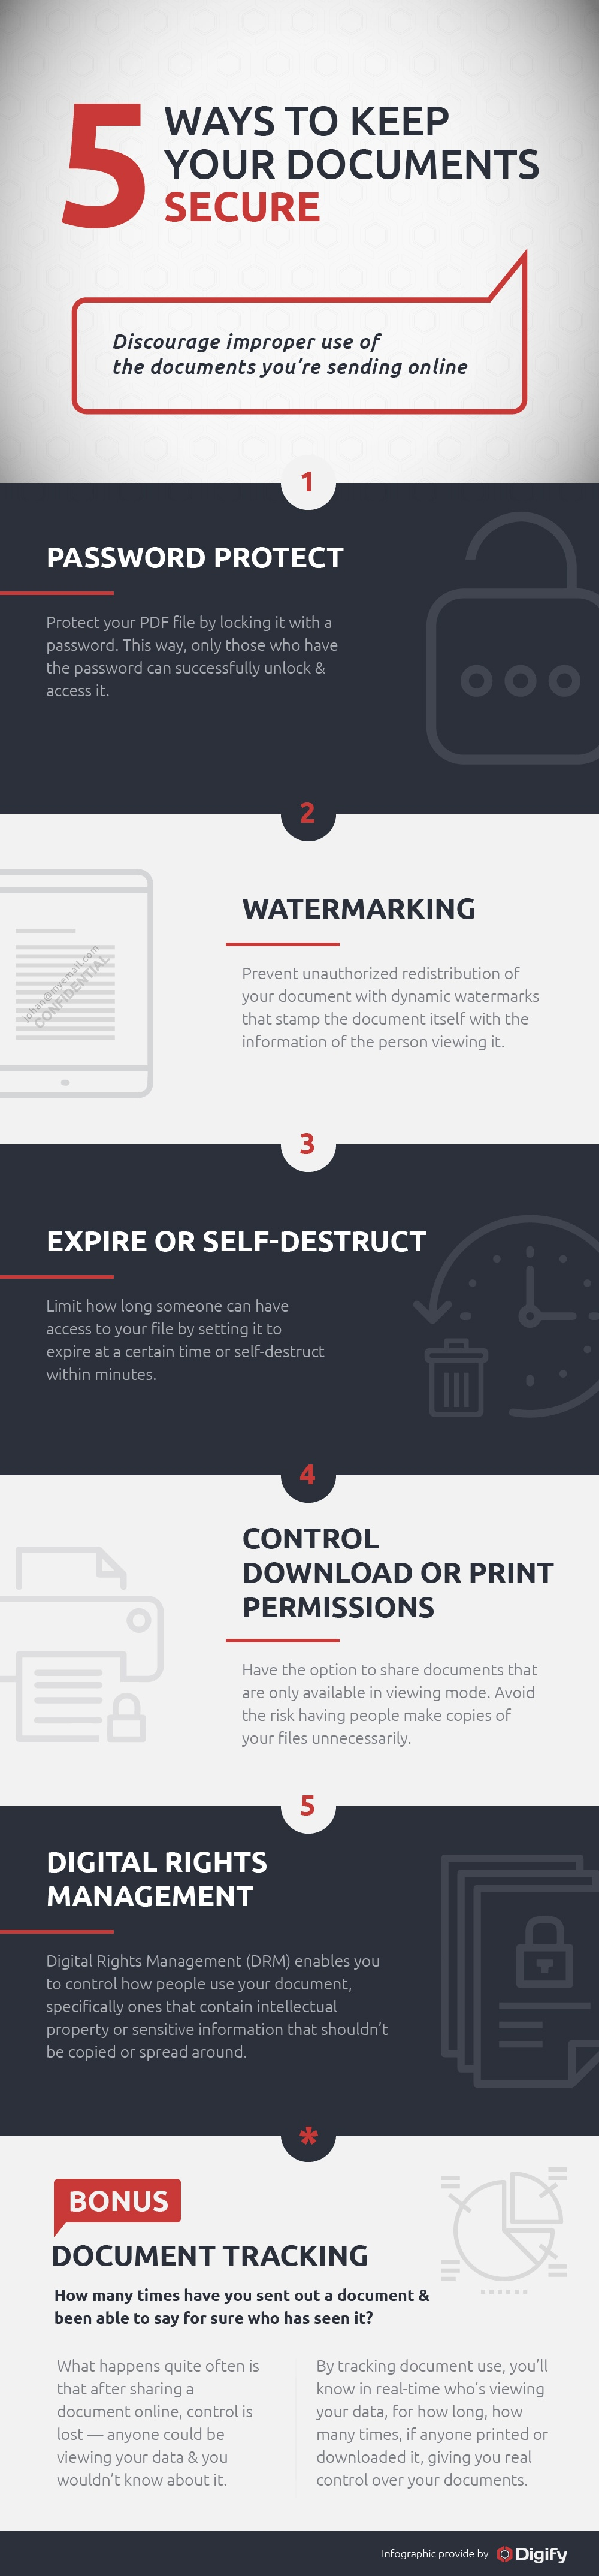 5_ways_to_keep_your_document_secure